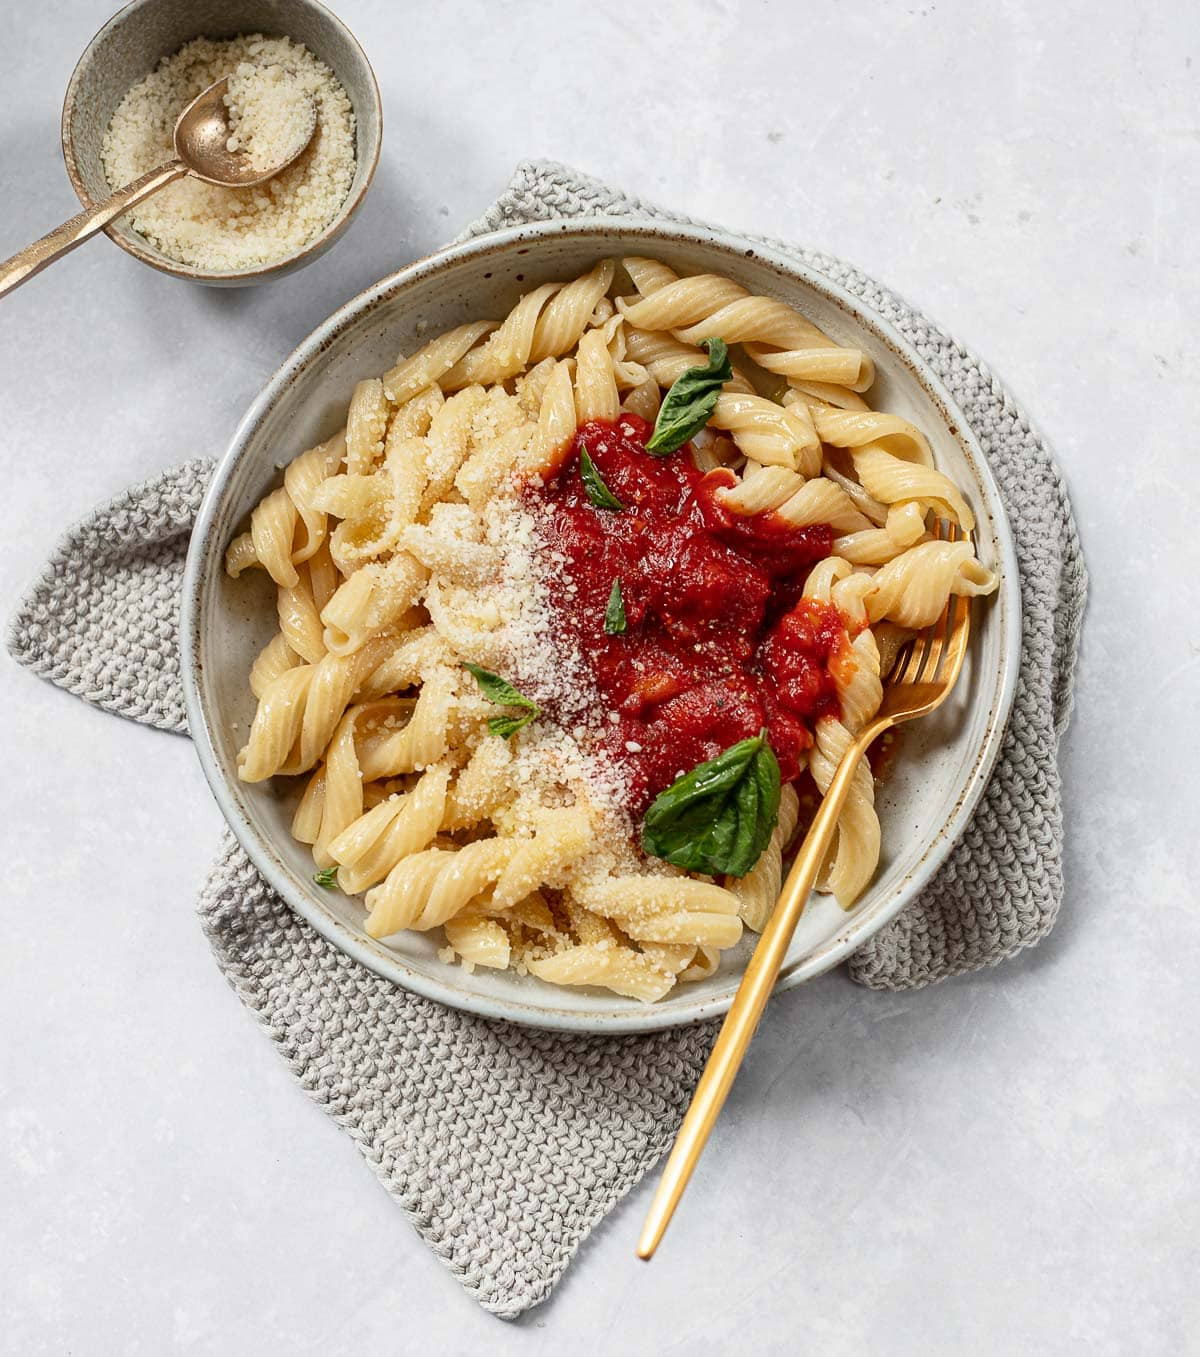 A bowl of pasta and pomodoro sauce with a fork on top of a knitted towel and cheese on the side.